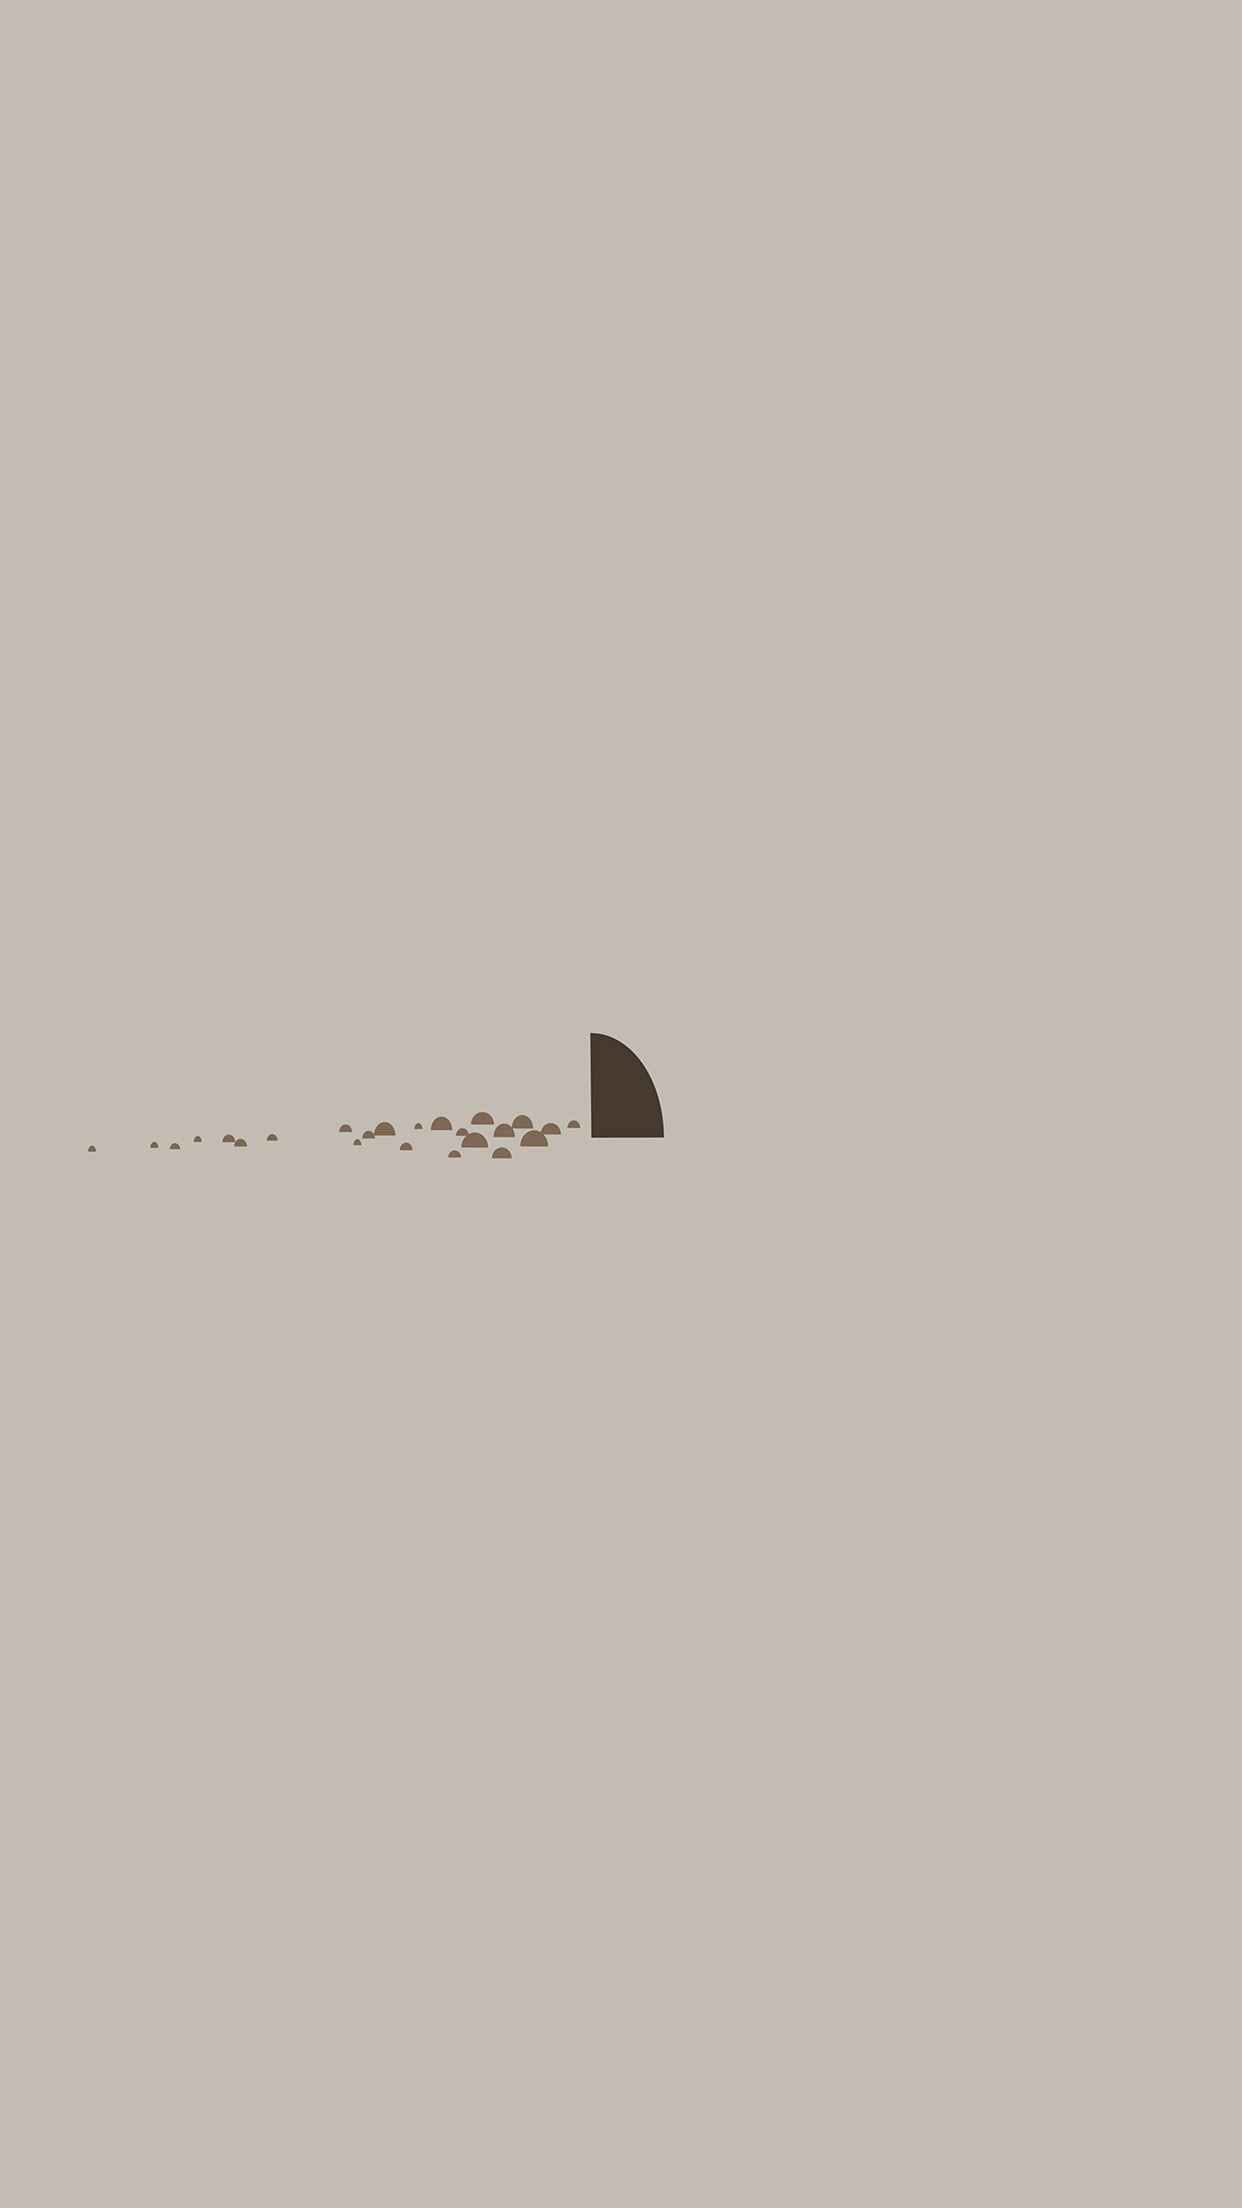 An33 Minimal Simple Shark Sea Illust Art Cute Wallpaper